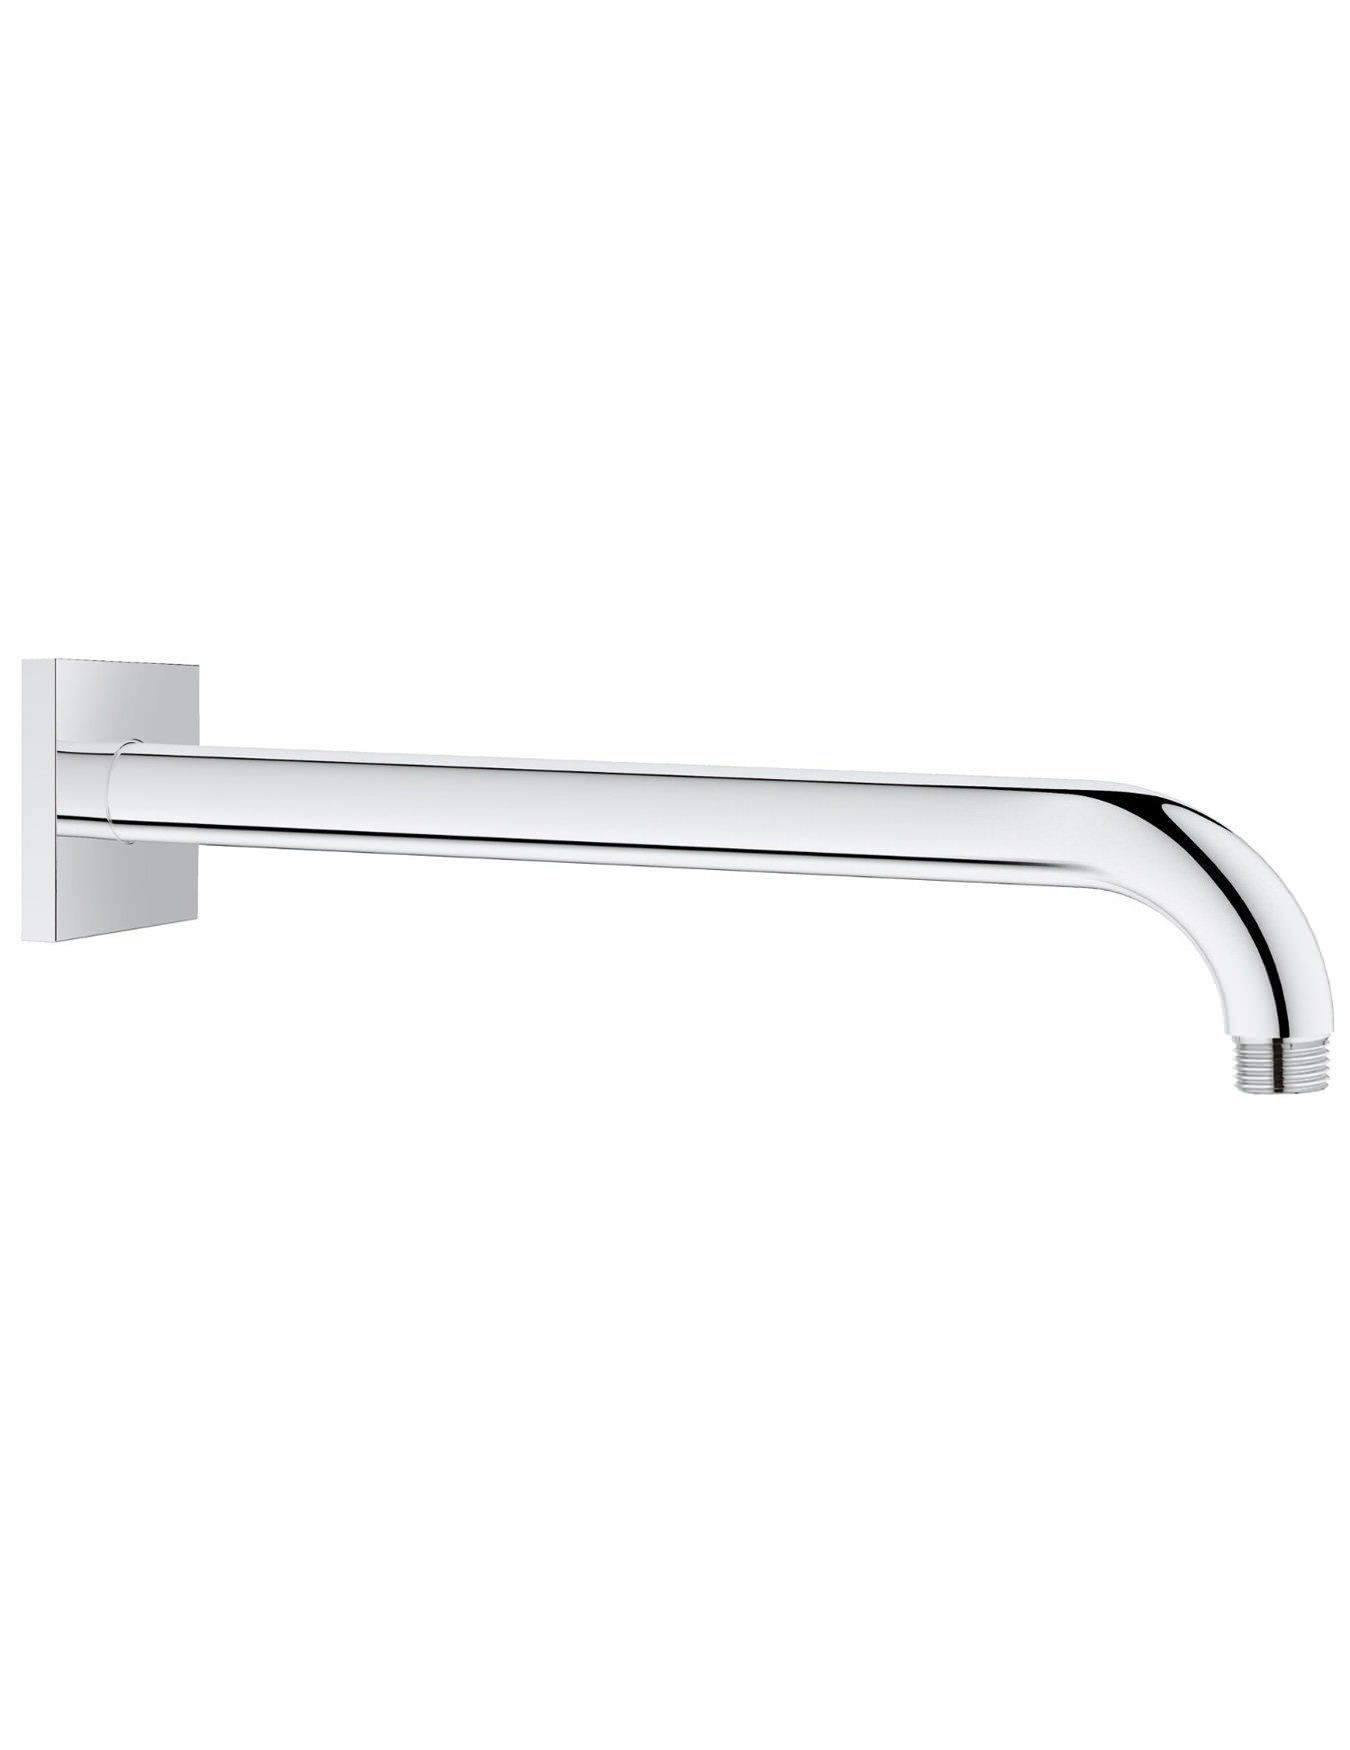 Grohe Rainshower Wall Mounted Shower Arm 275mm